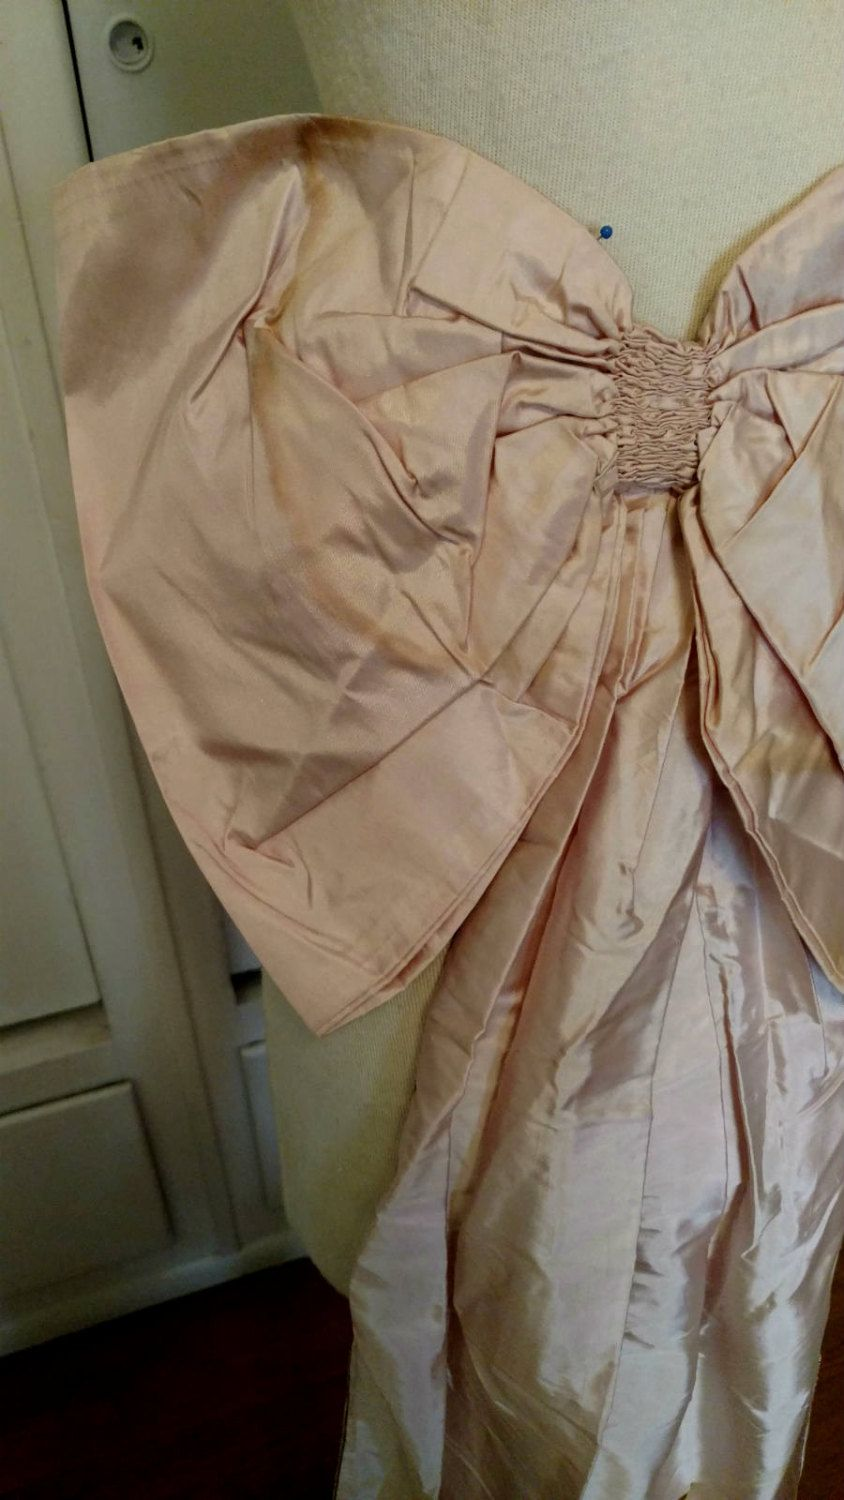 Victorian Ribbon Sash Pink Silk Taffeta Antique Bow Streamers From Ball Gown Dress by TheGatheringVintage on Etsy